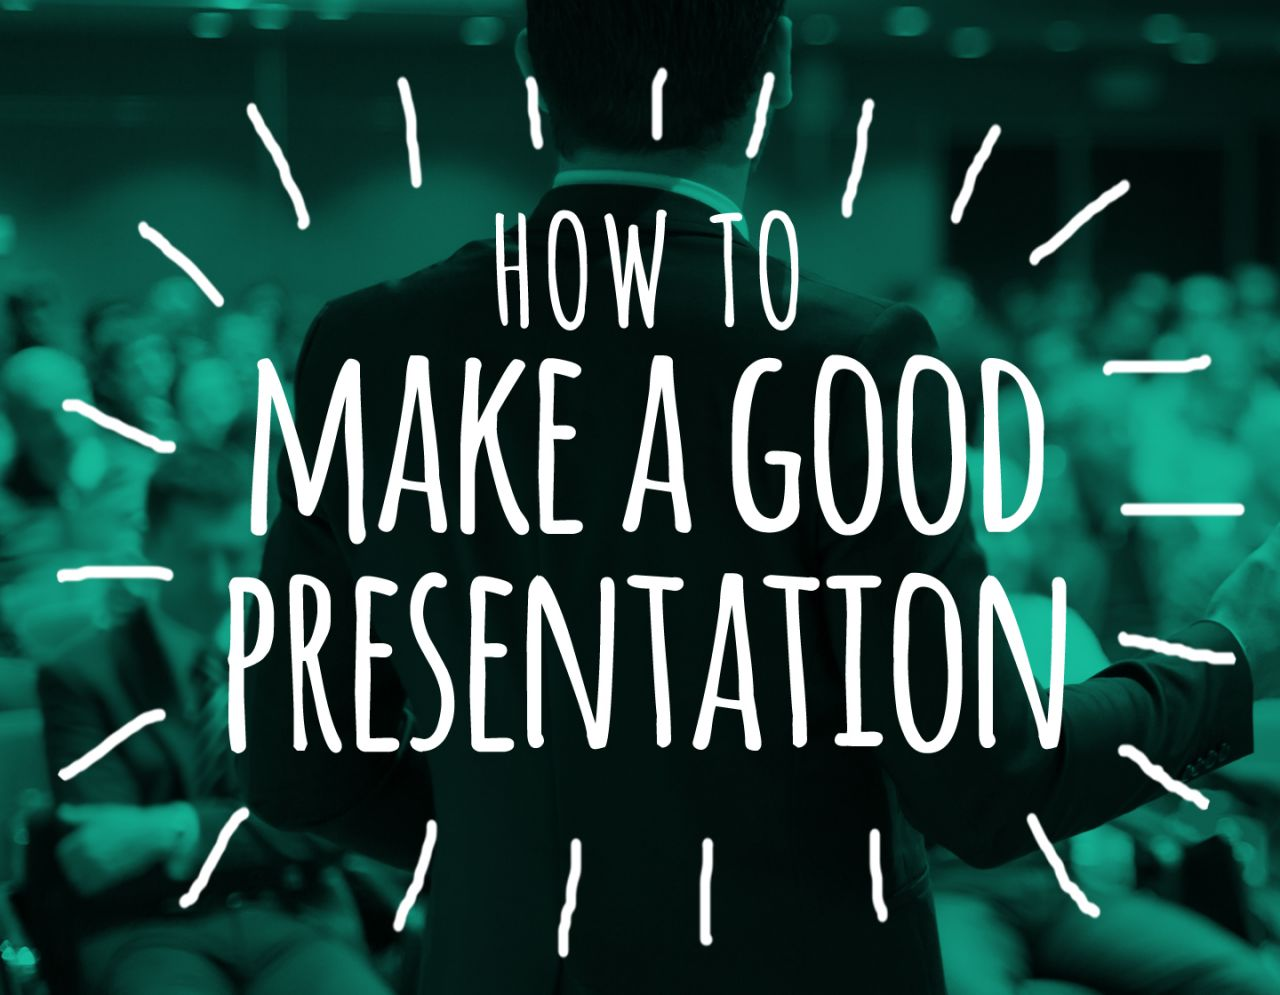 How to make a good presentation   7 Tips from the experts   Biteable